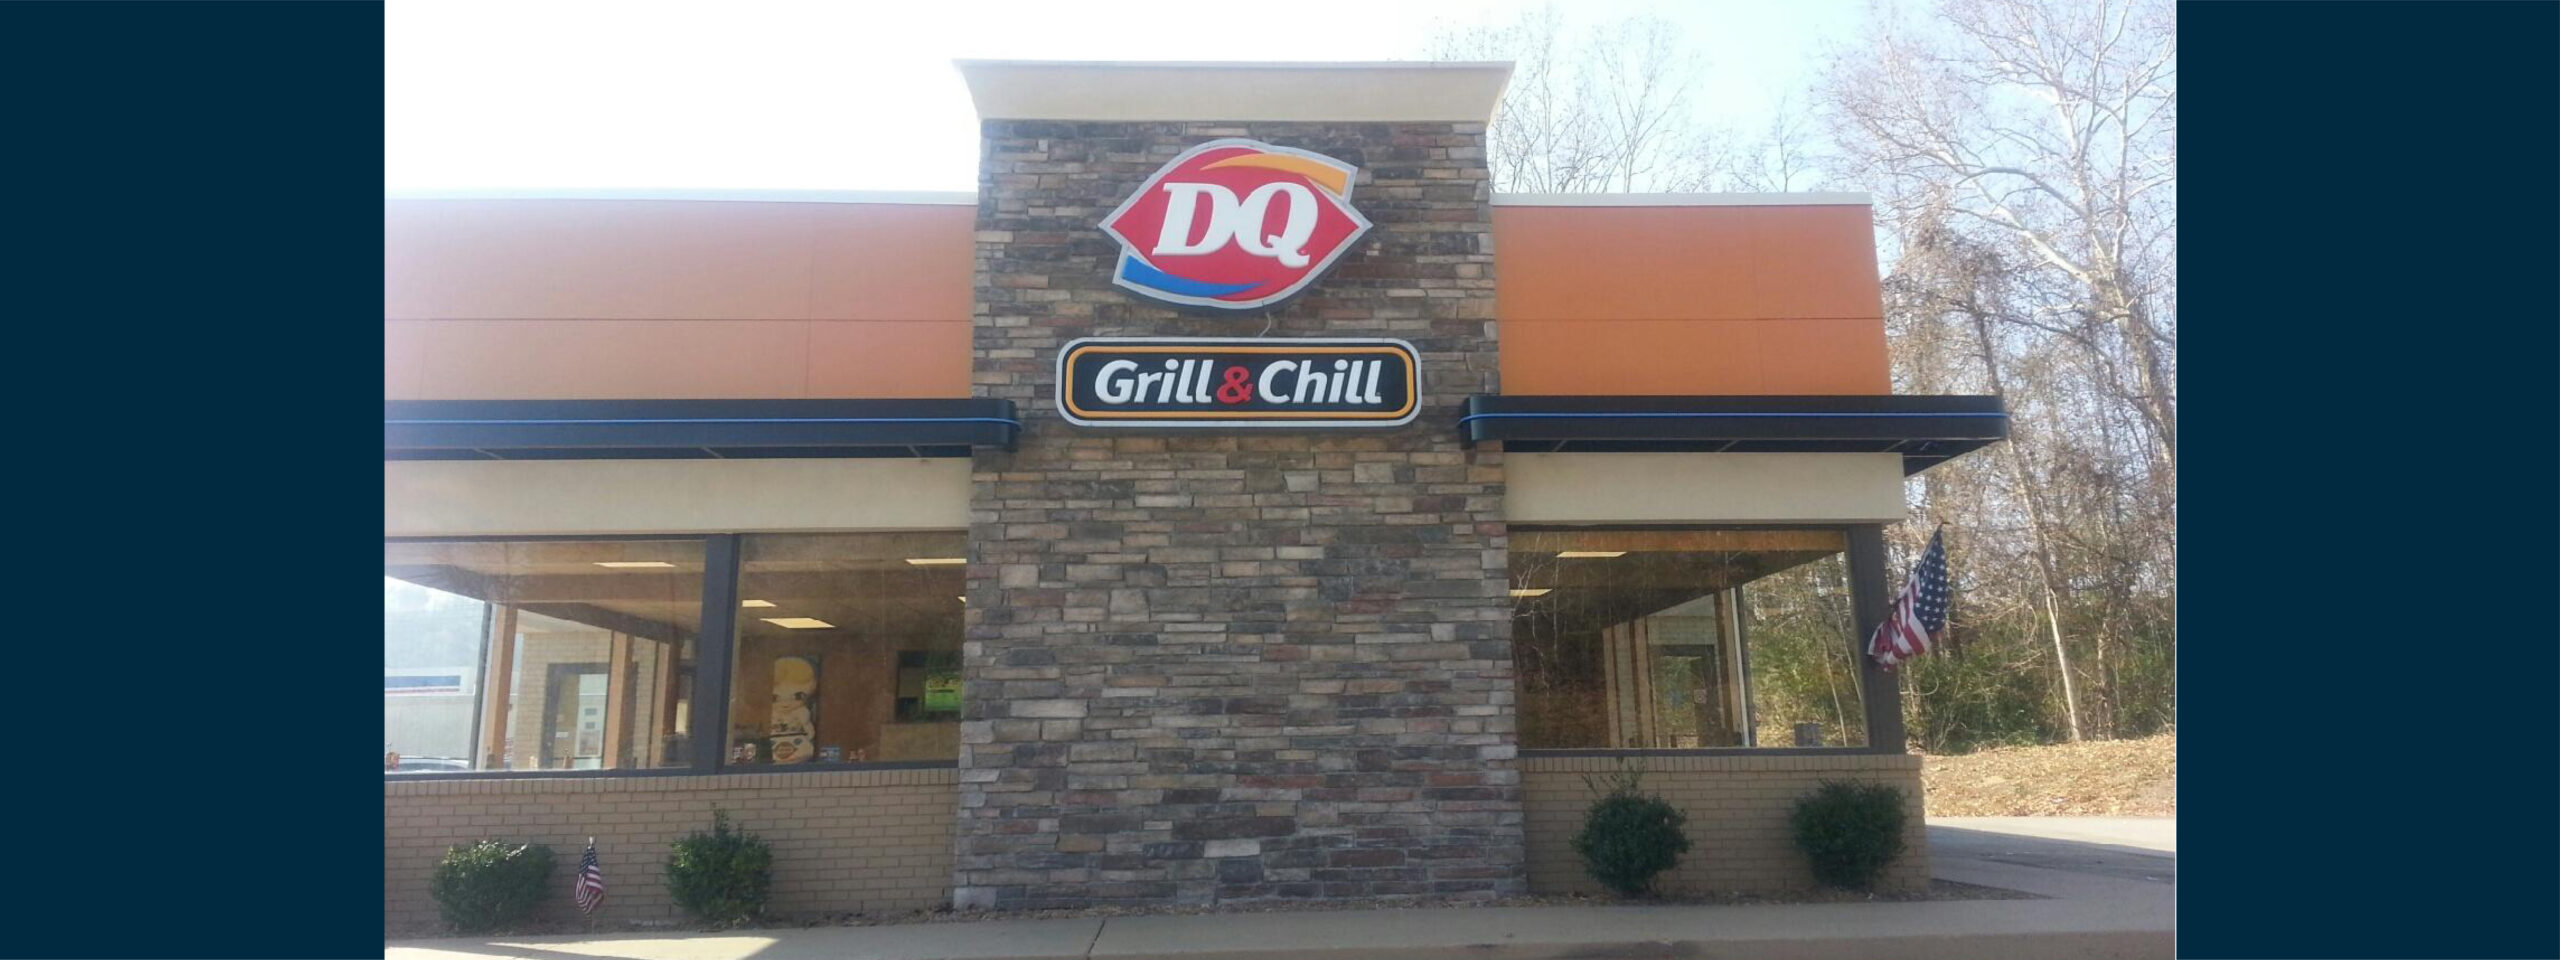 Olive Hill, KY Fourteen Foods DQ Restaurant